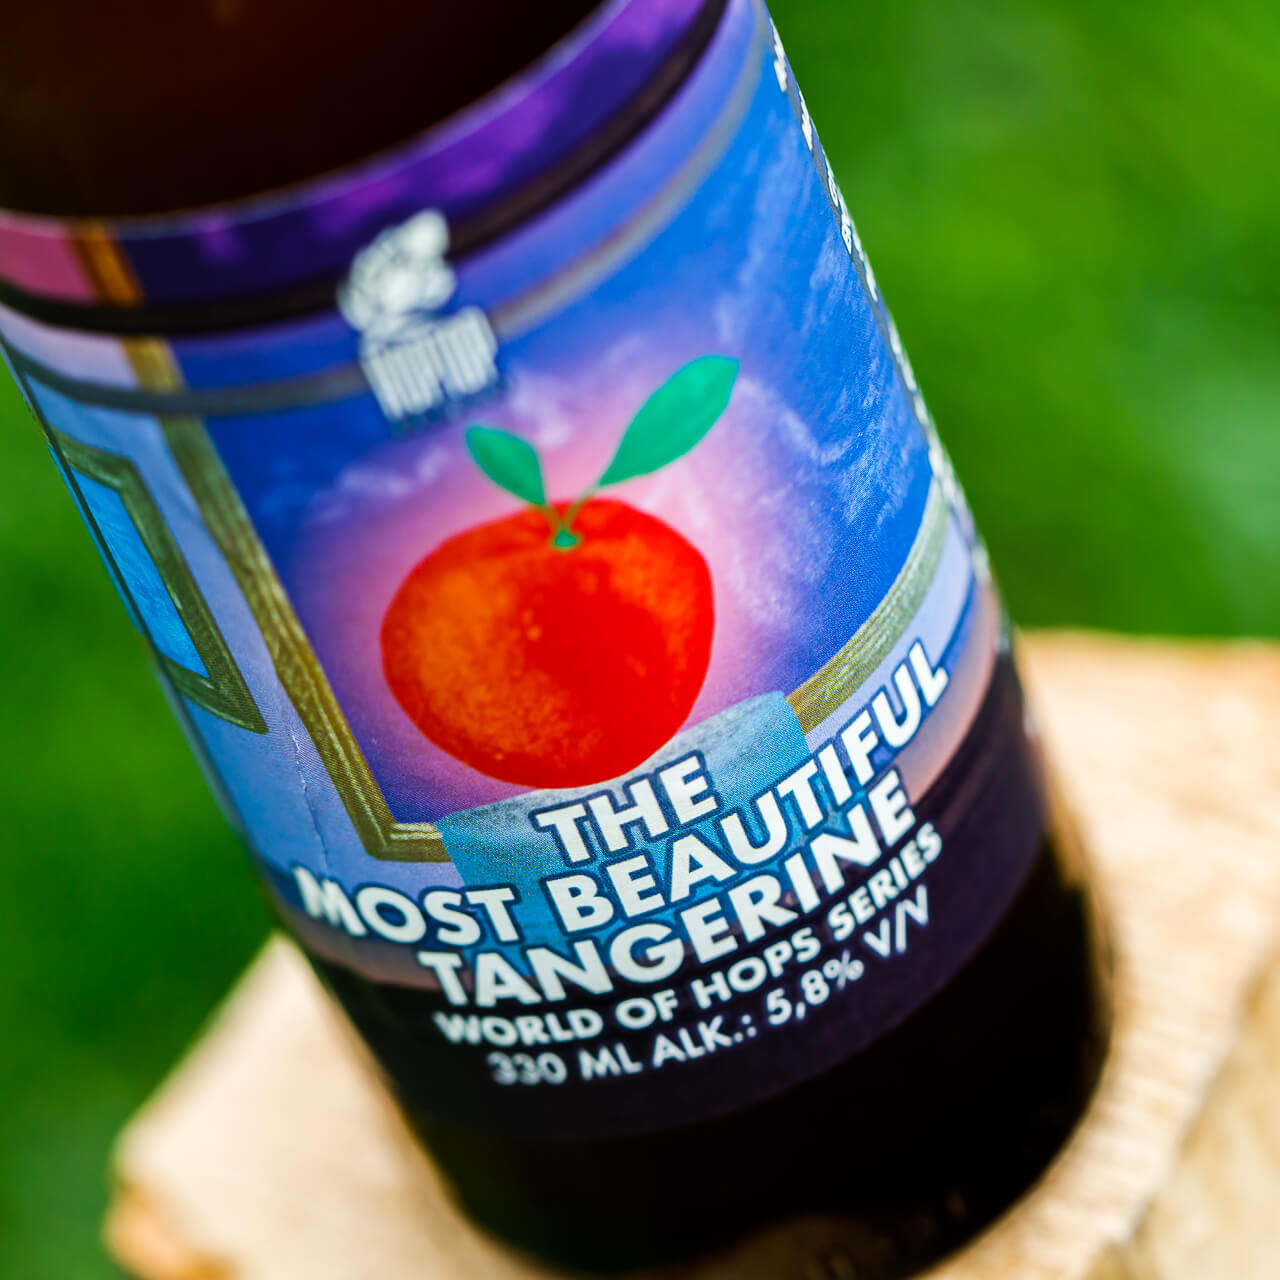 The Most Beautiful Tangerine 5,8%